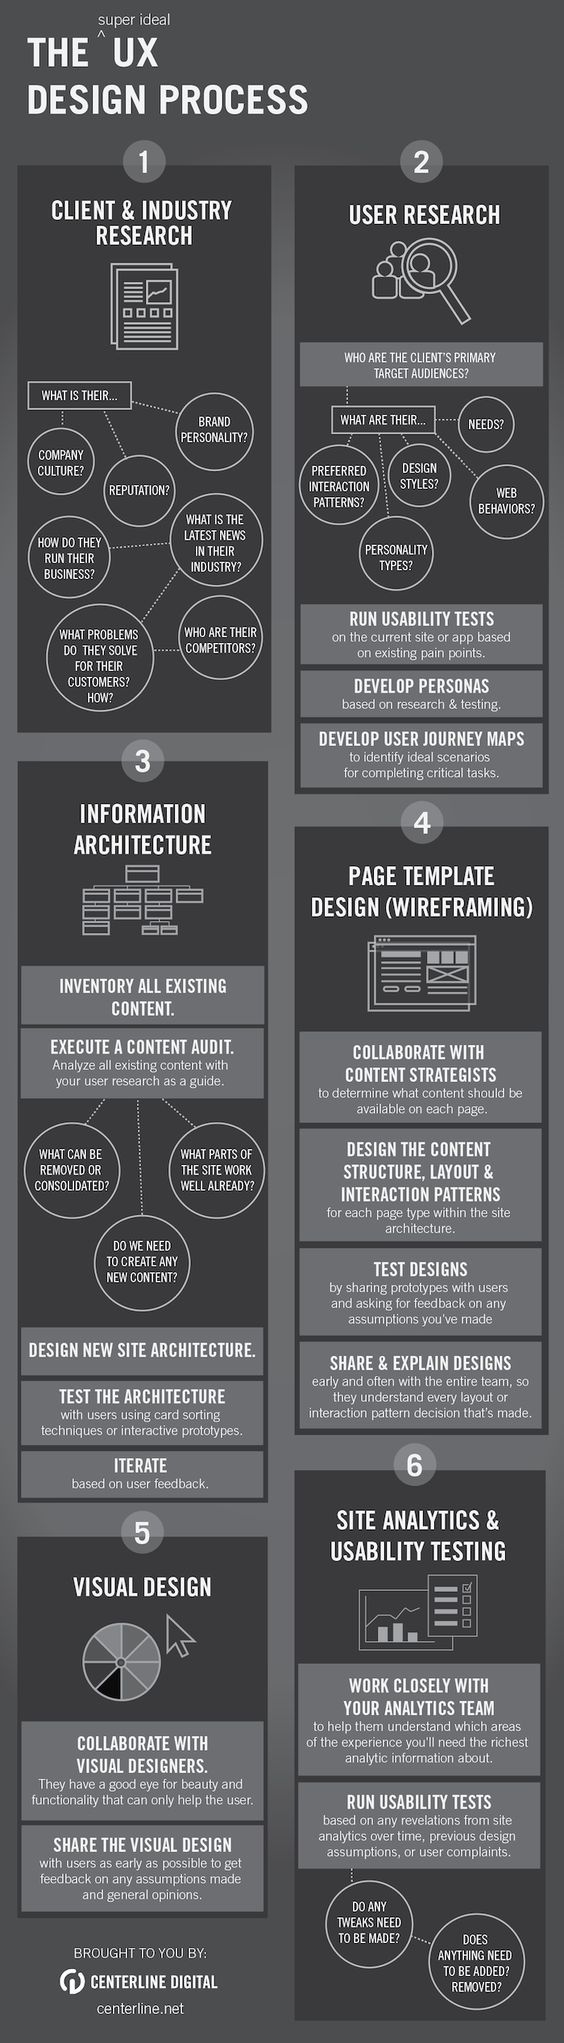 User Experience Design process is about getting to know people. | Jak wygląda proces projektowania UX?